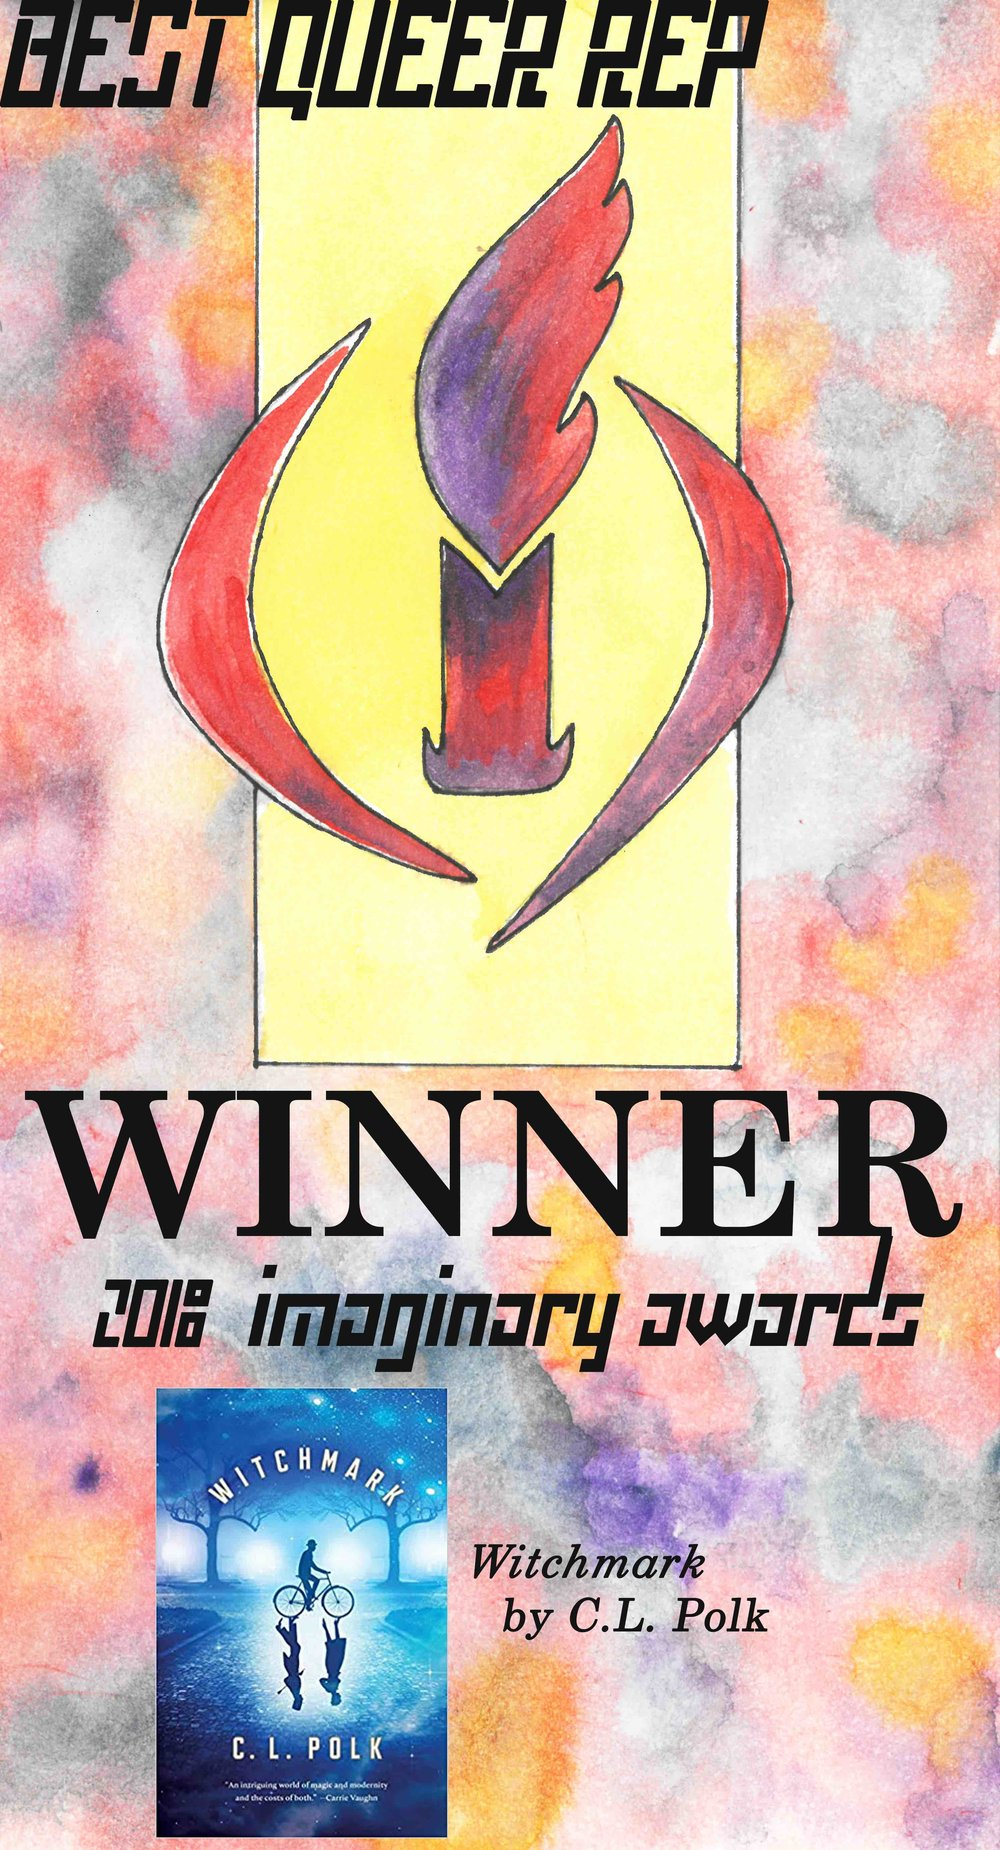 2018 - Winner! Witchmark by C.L. PolkThe Brilliant Death by Amy Rose CapettaStarless by Jacqueline CareyThe Hidden Witch by Molly OstertagOn a Sunbeam by Tillie Walden